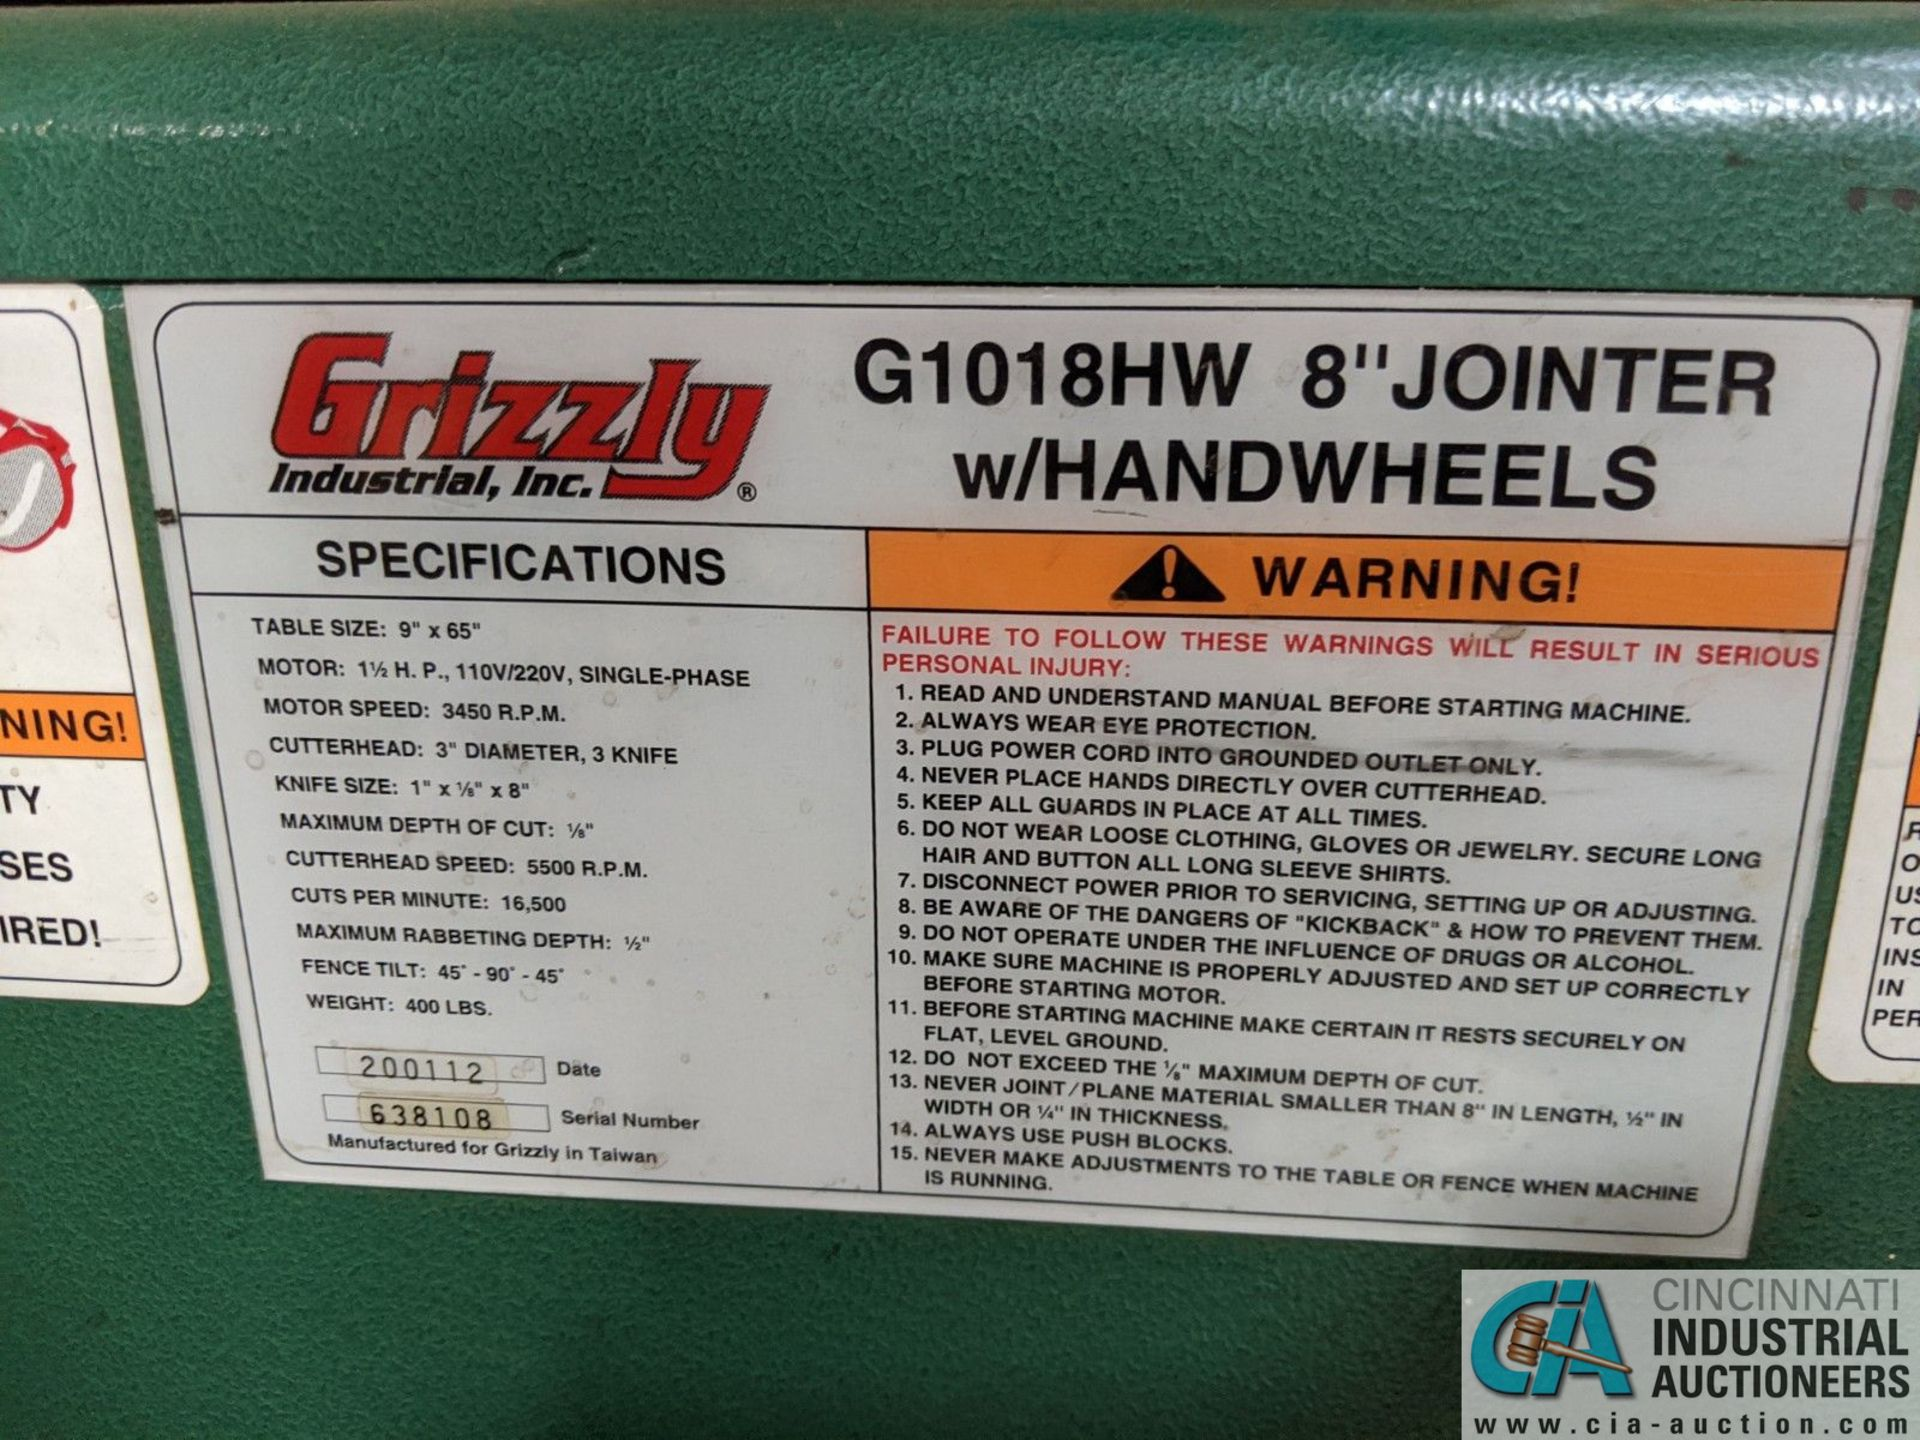 """8"""" GRIZZLY MODEL G1018HW JOINTER; S/N 6388108, 9"""" X 65"""" TABLE (8635 East Ave., Mentor, OH 44060 - - Image 7 of 7"""